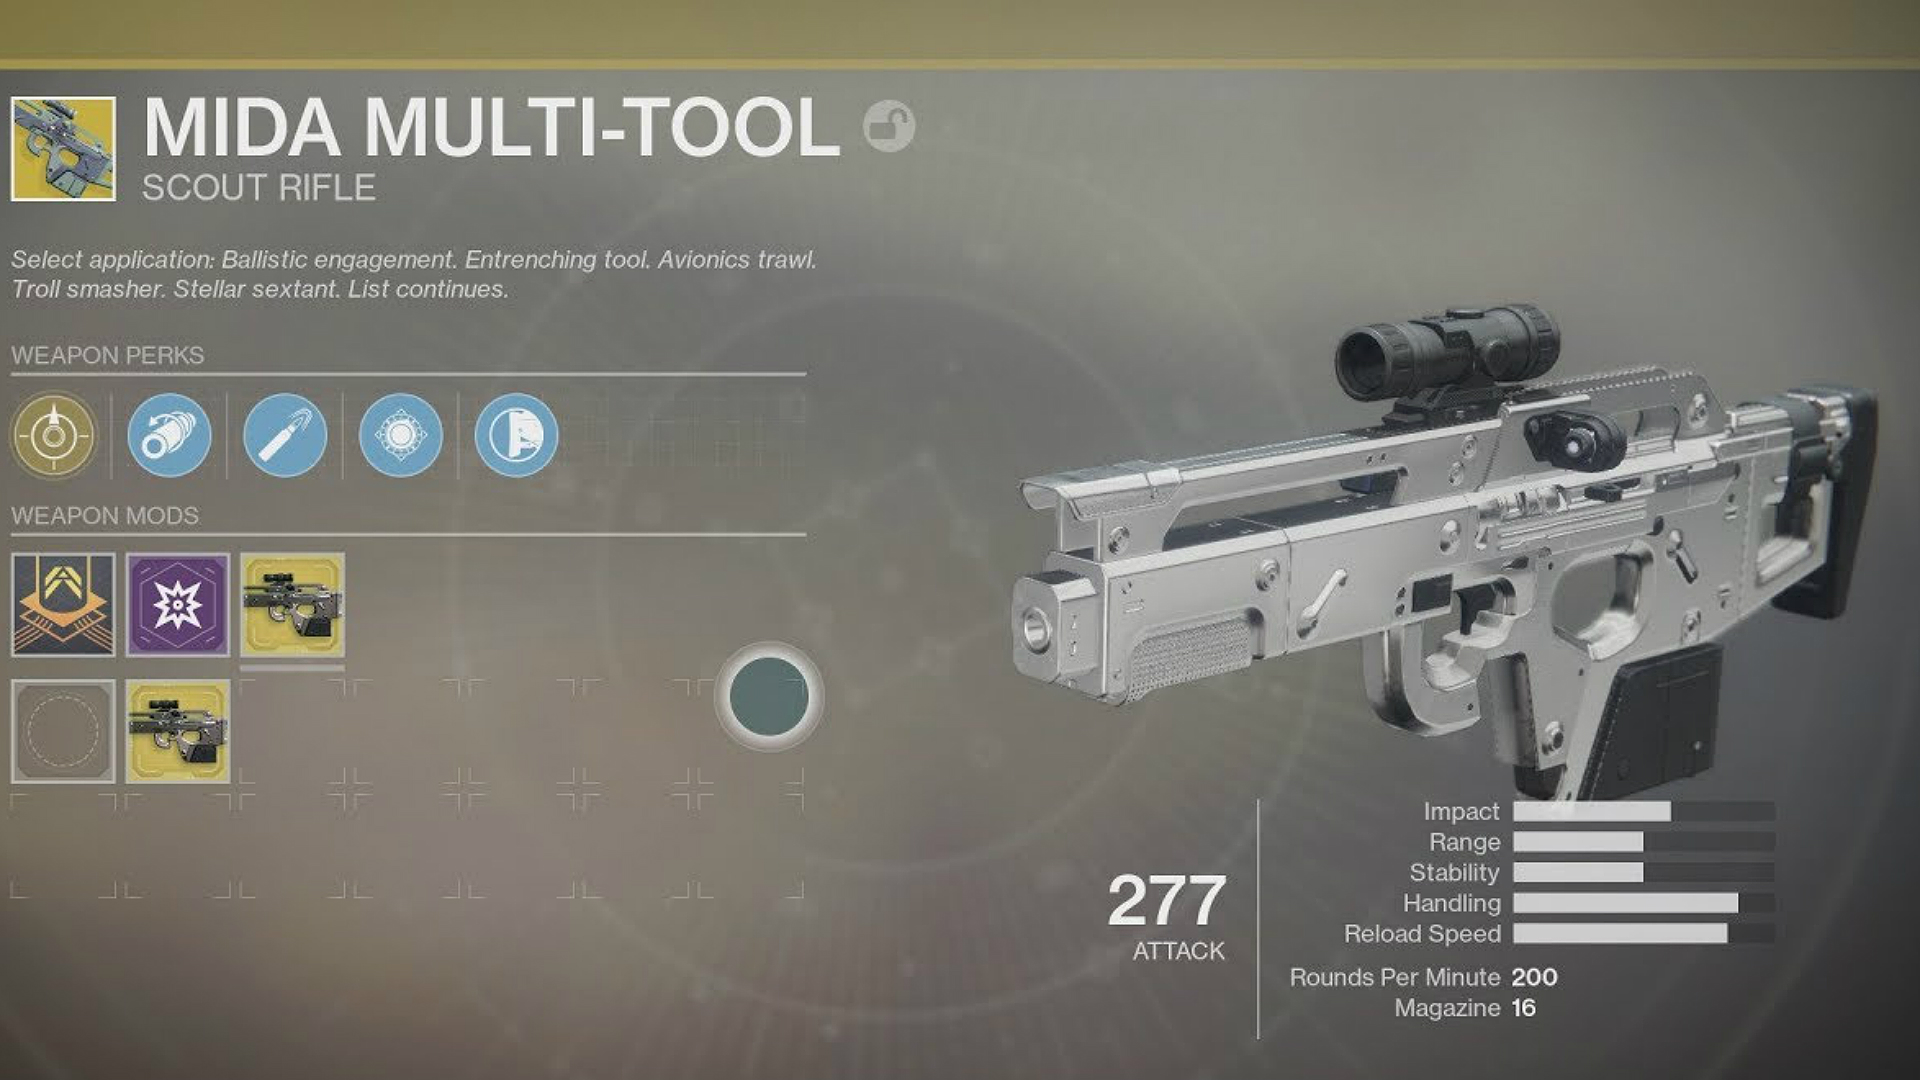 The Best Weapons For Destiny 2 PvP